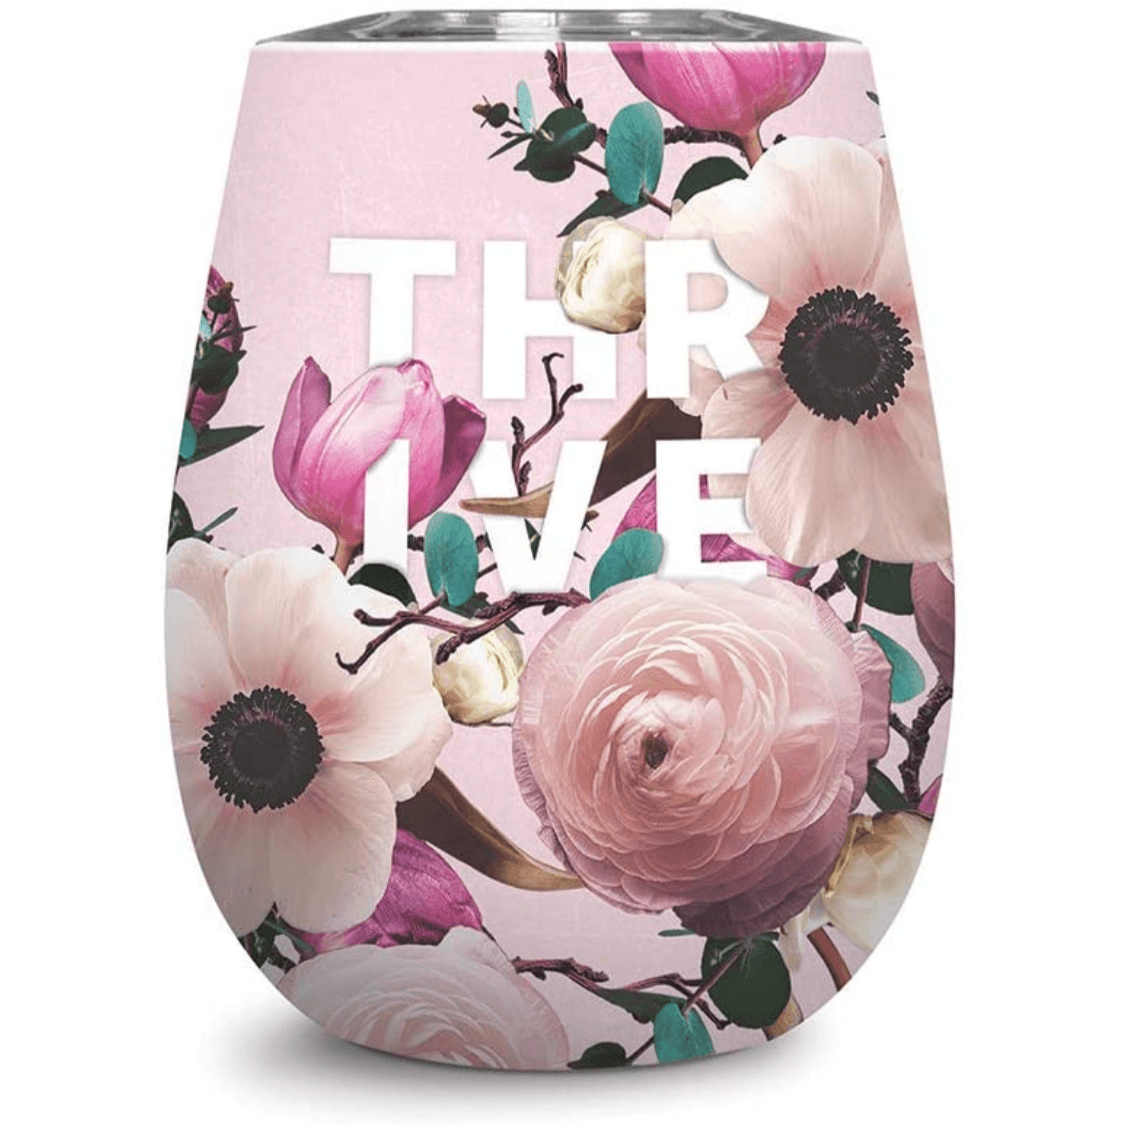 Stainless Steel Wine Tumbler - Lady of the Lake